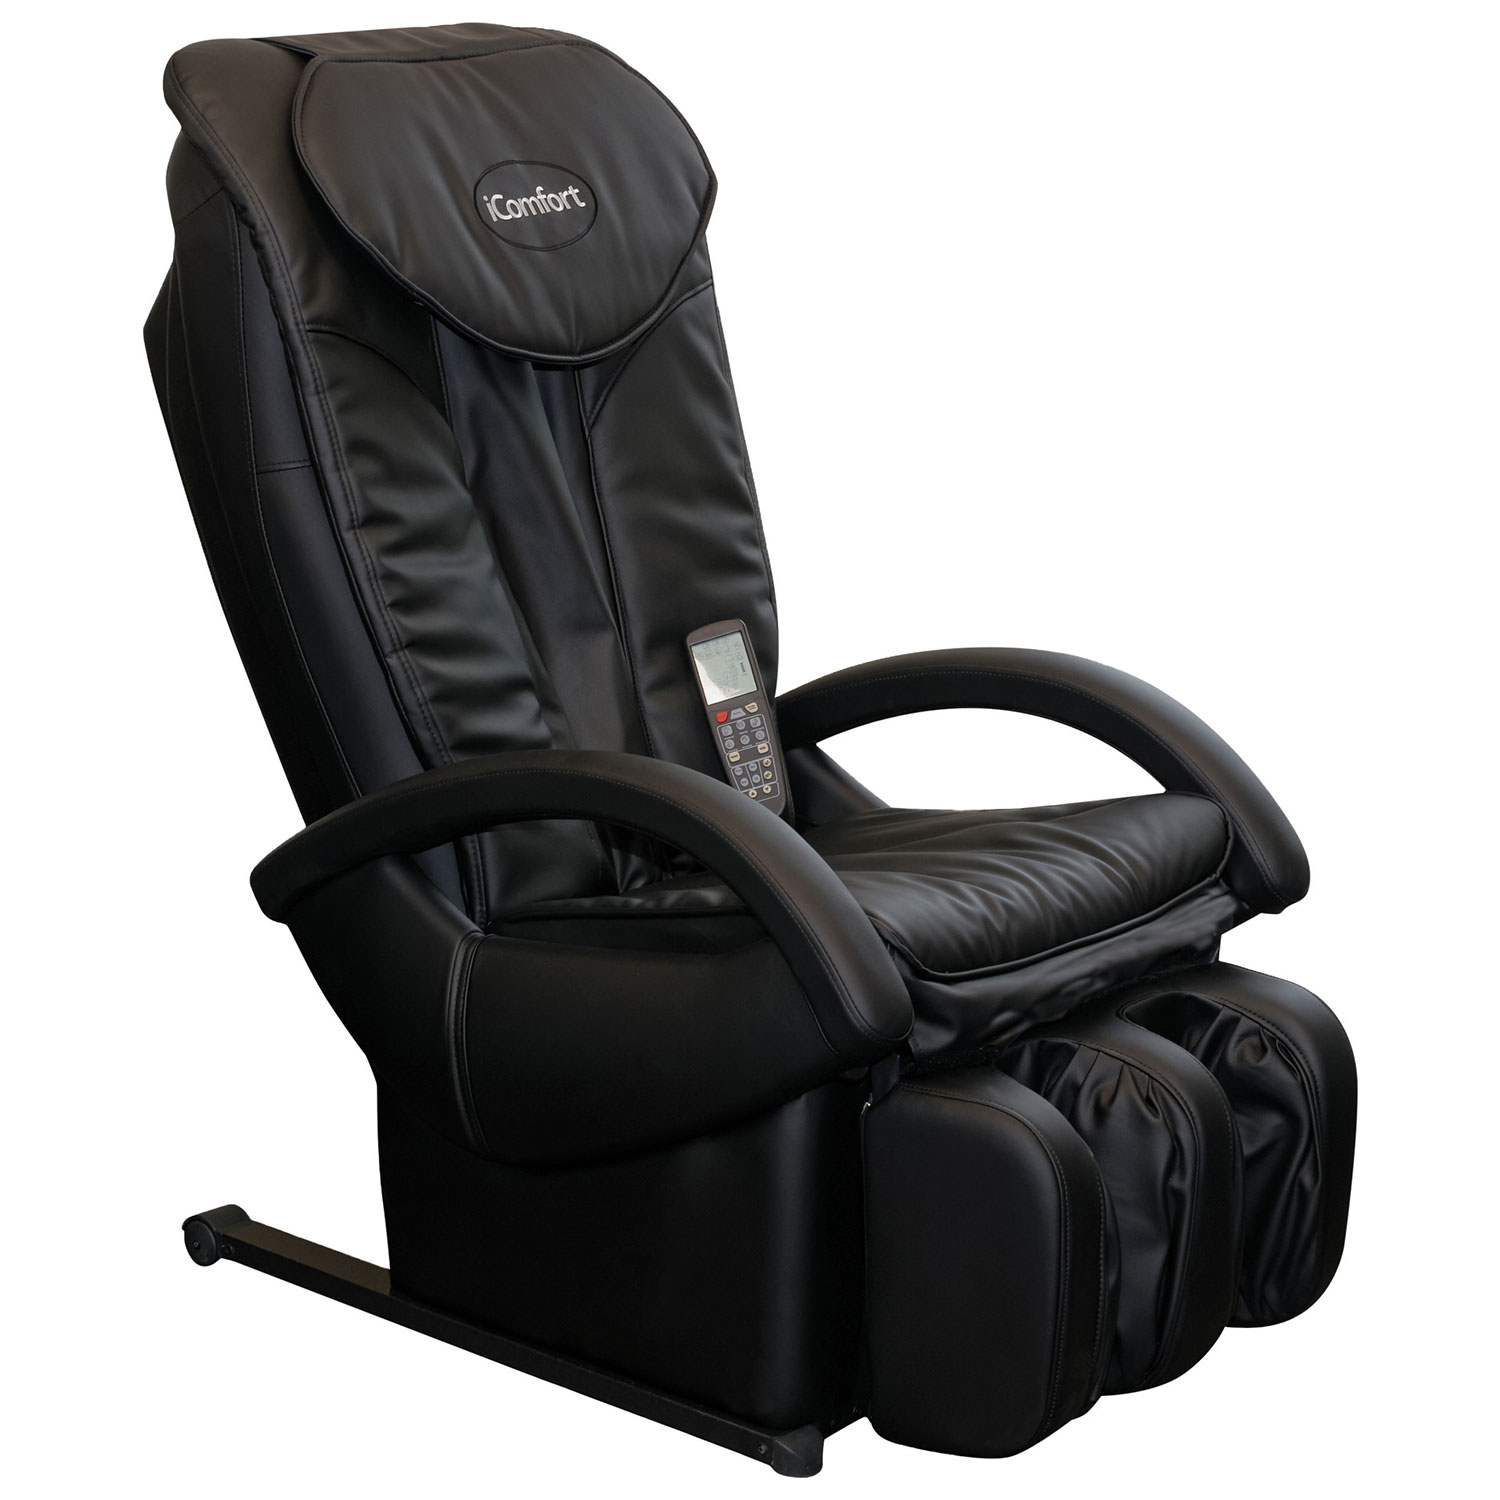 i fort Massage Chair IC1114 Black Massage Chairs Best